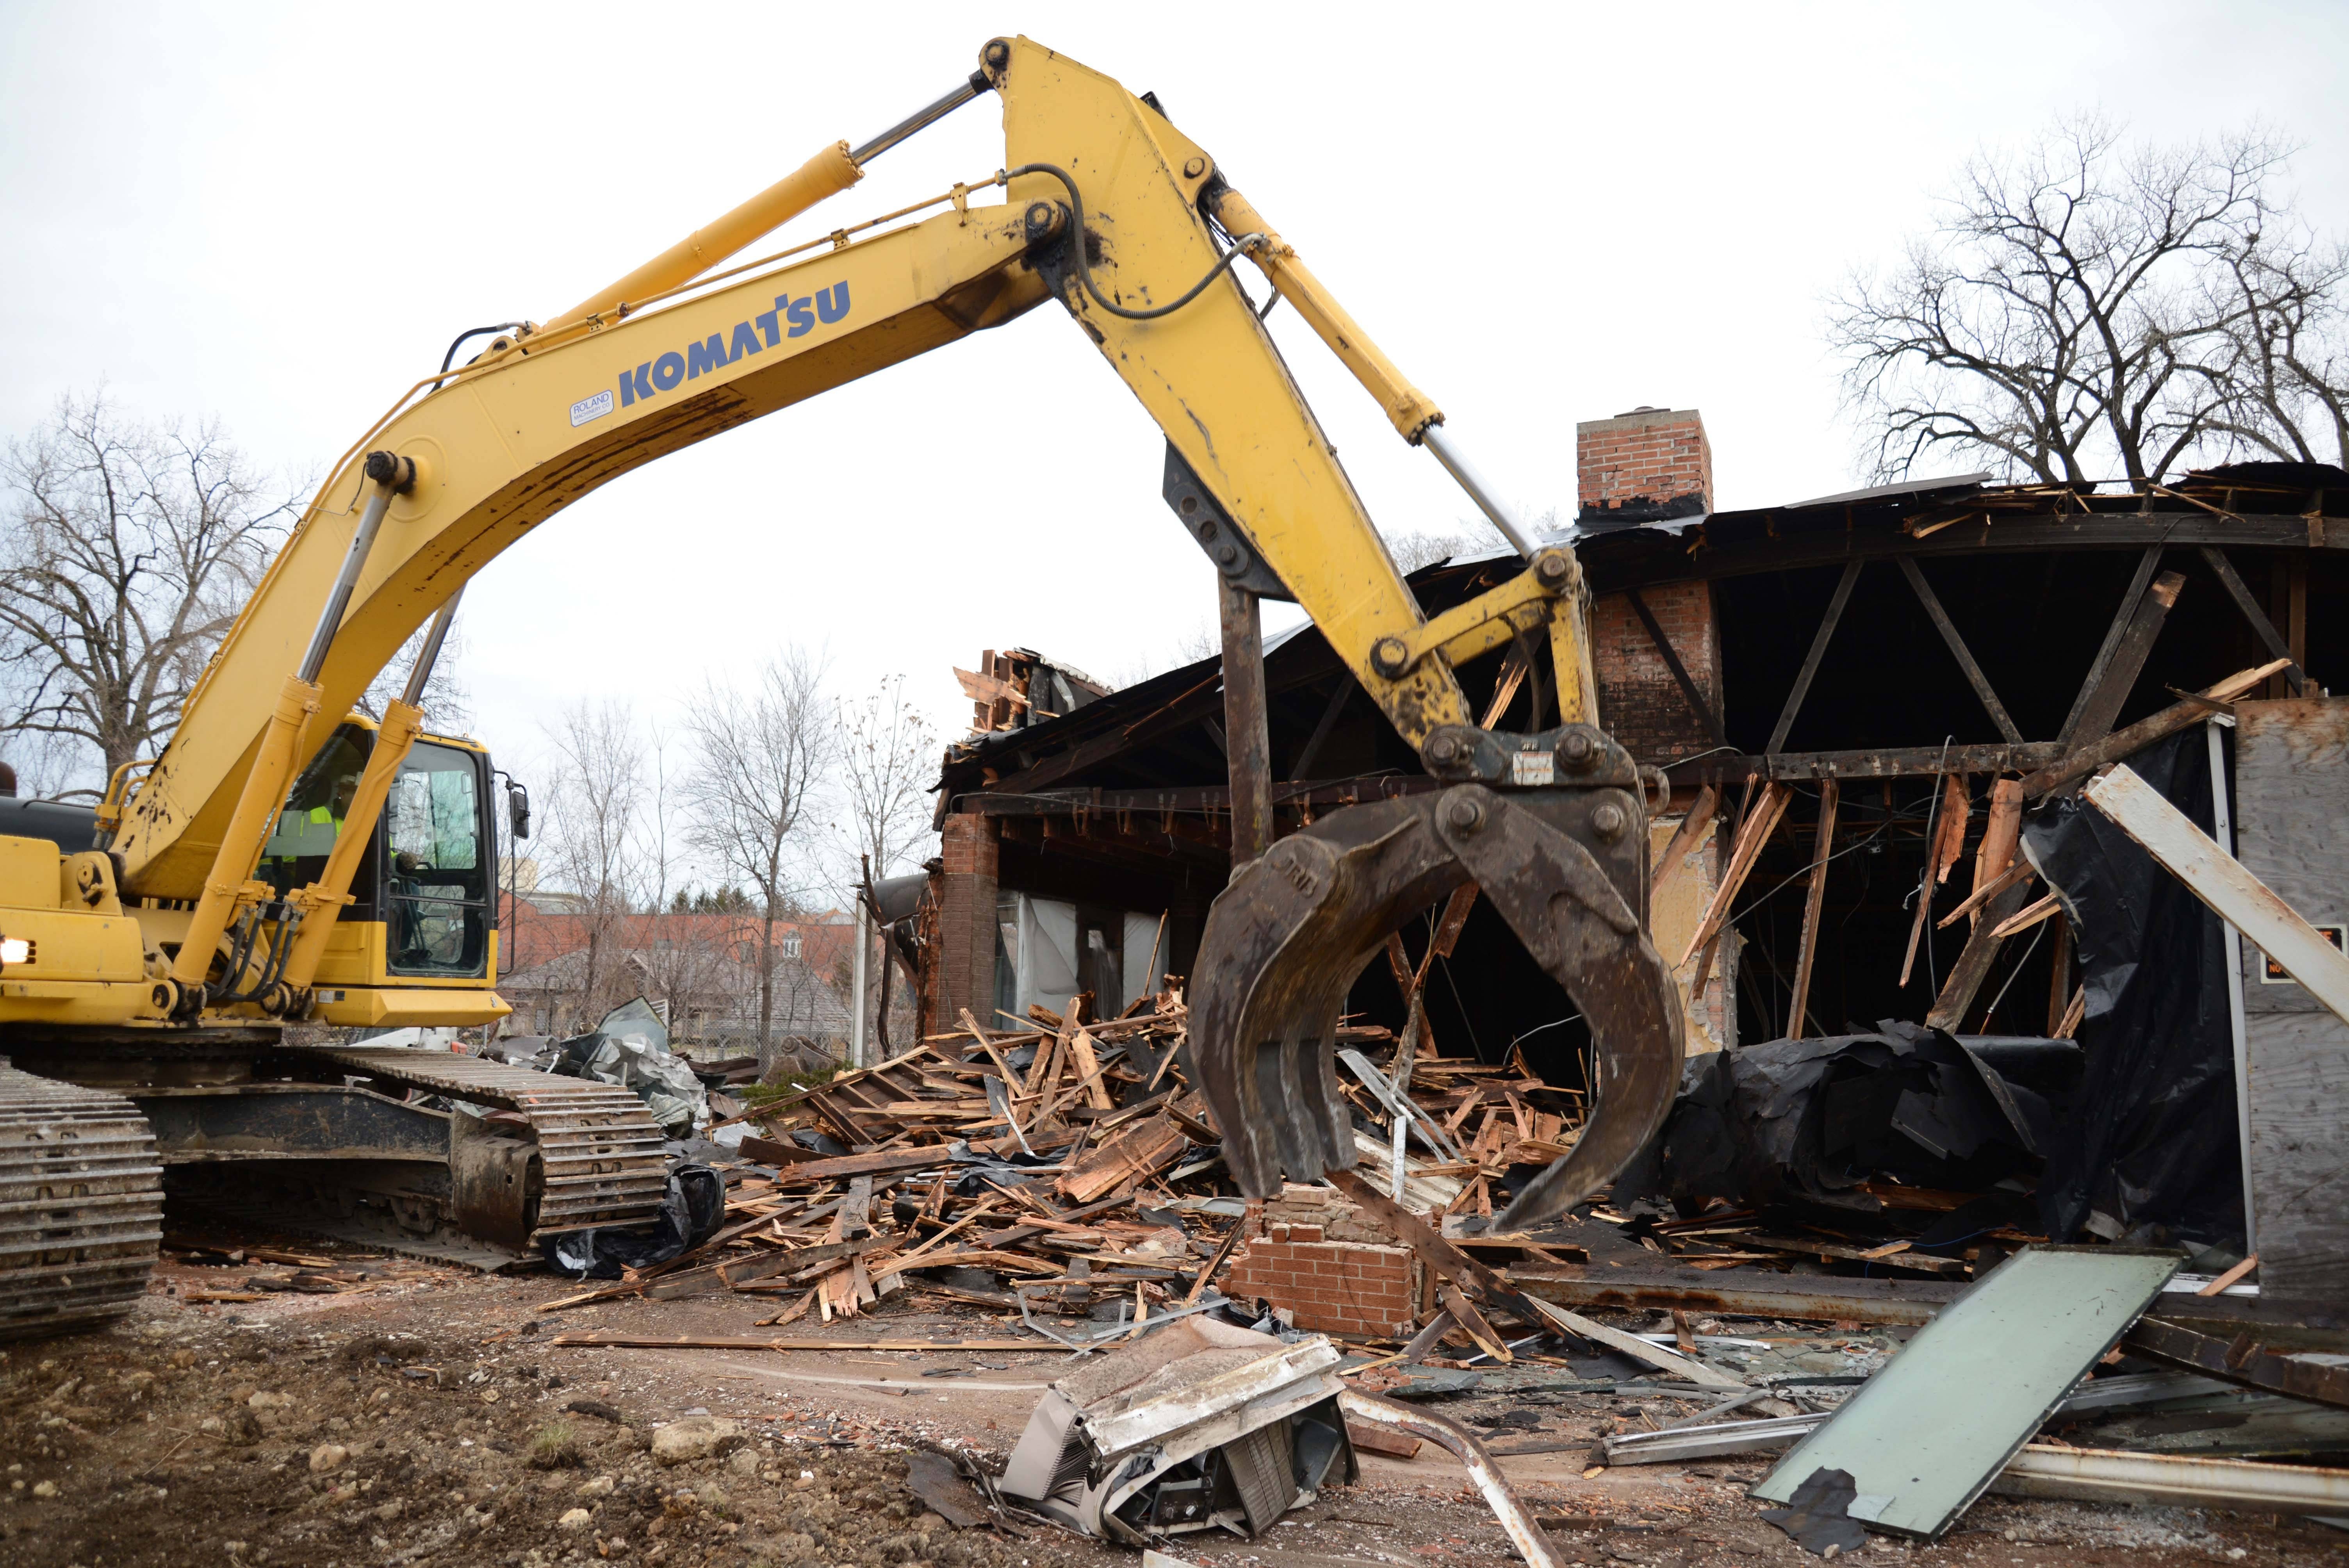 Demolition crews tore down the building at 420-440 S. Washington St. in downtown Naperville in January 2013. North Central College now plans to convert the site into a parklike setting with an electronic sign and elements to highlight the college's history of successful cross-country programs.